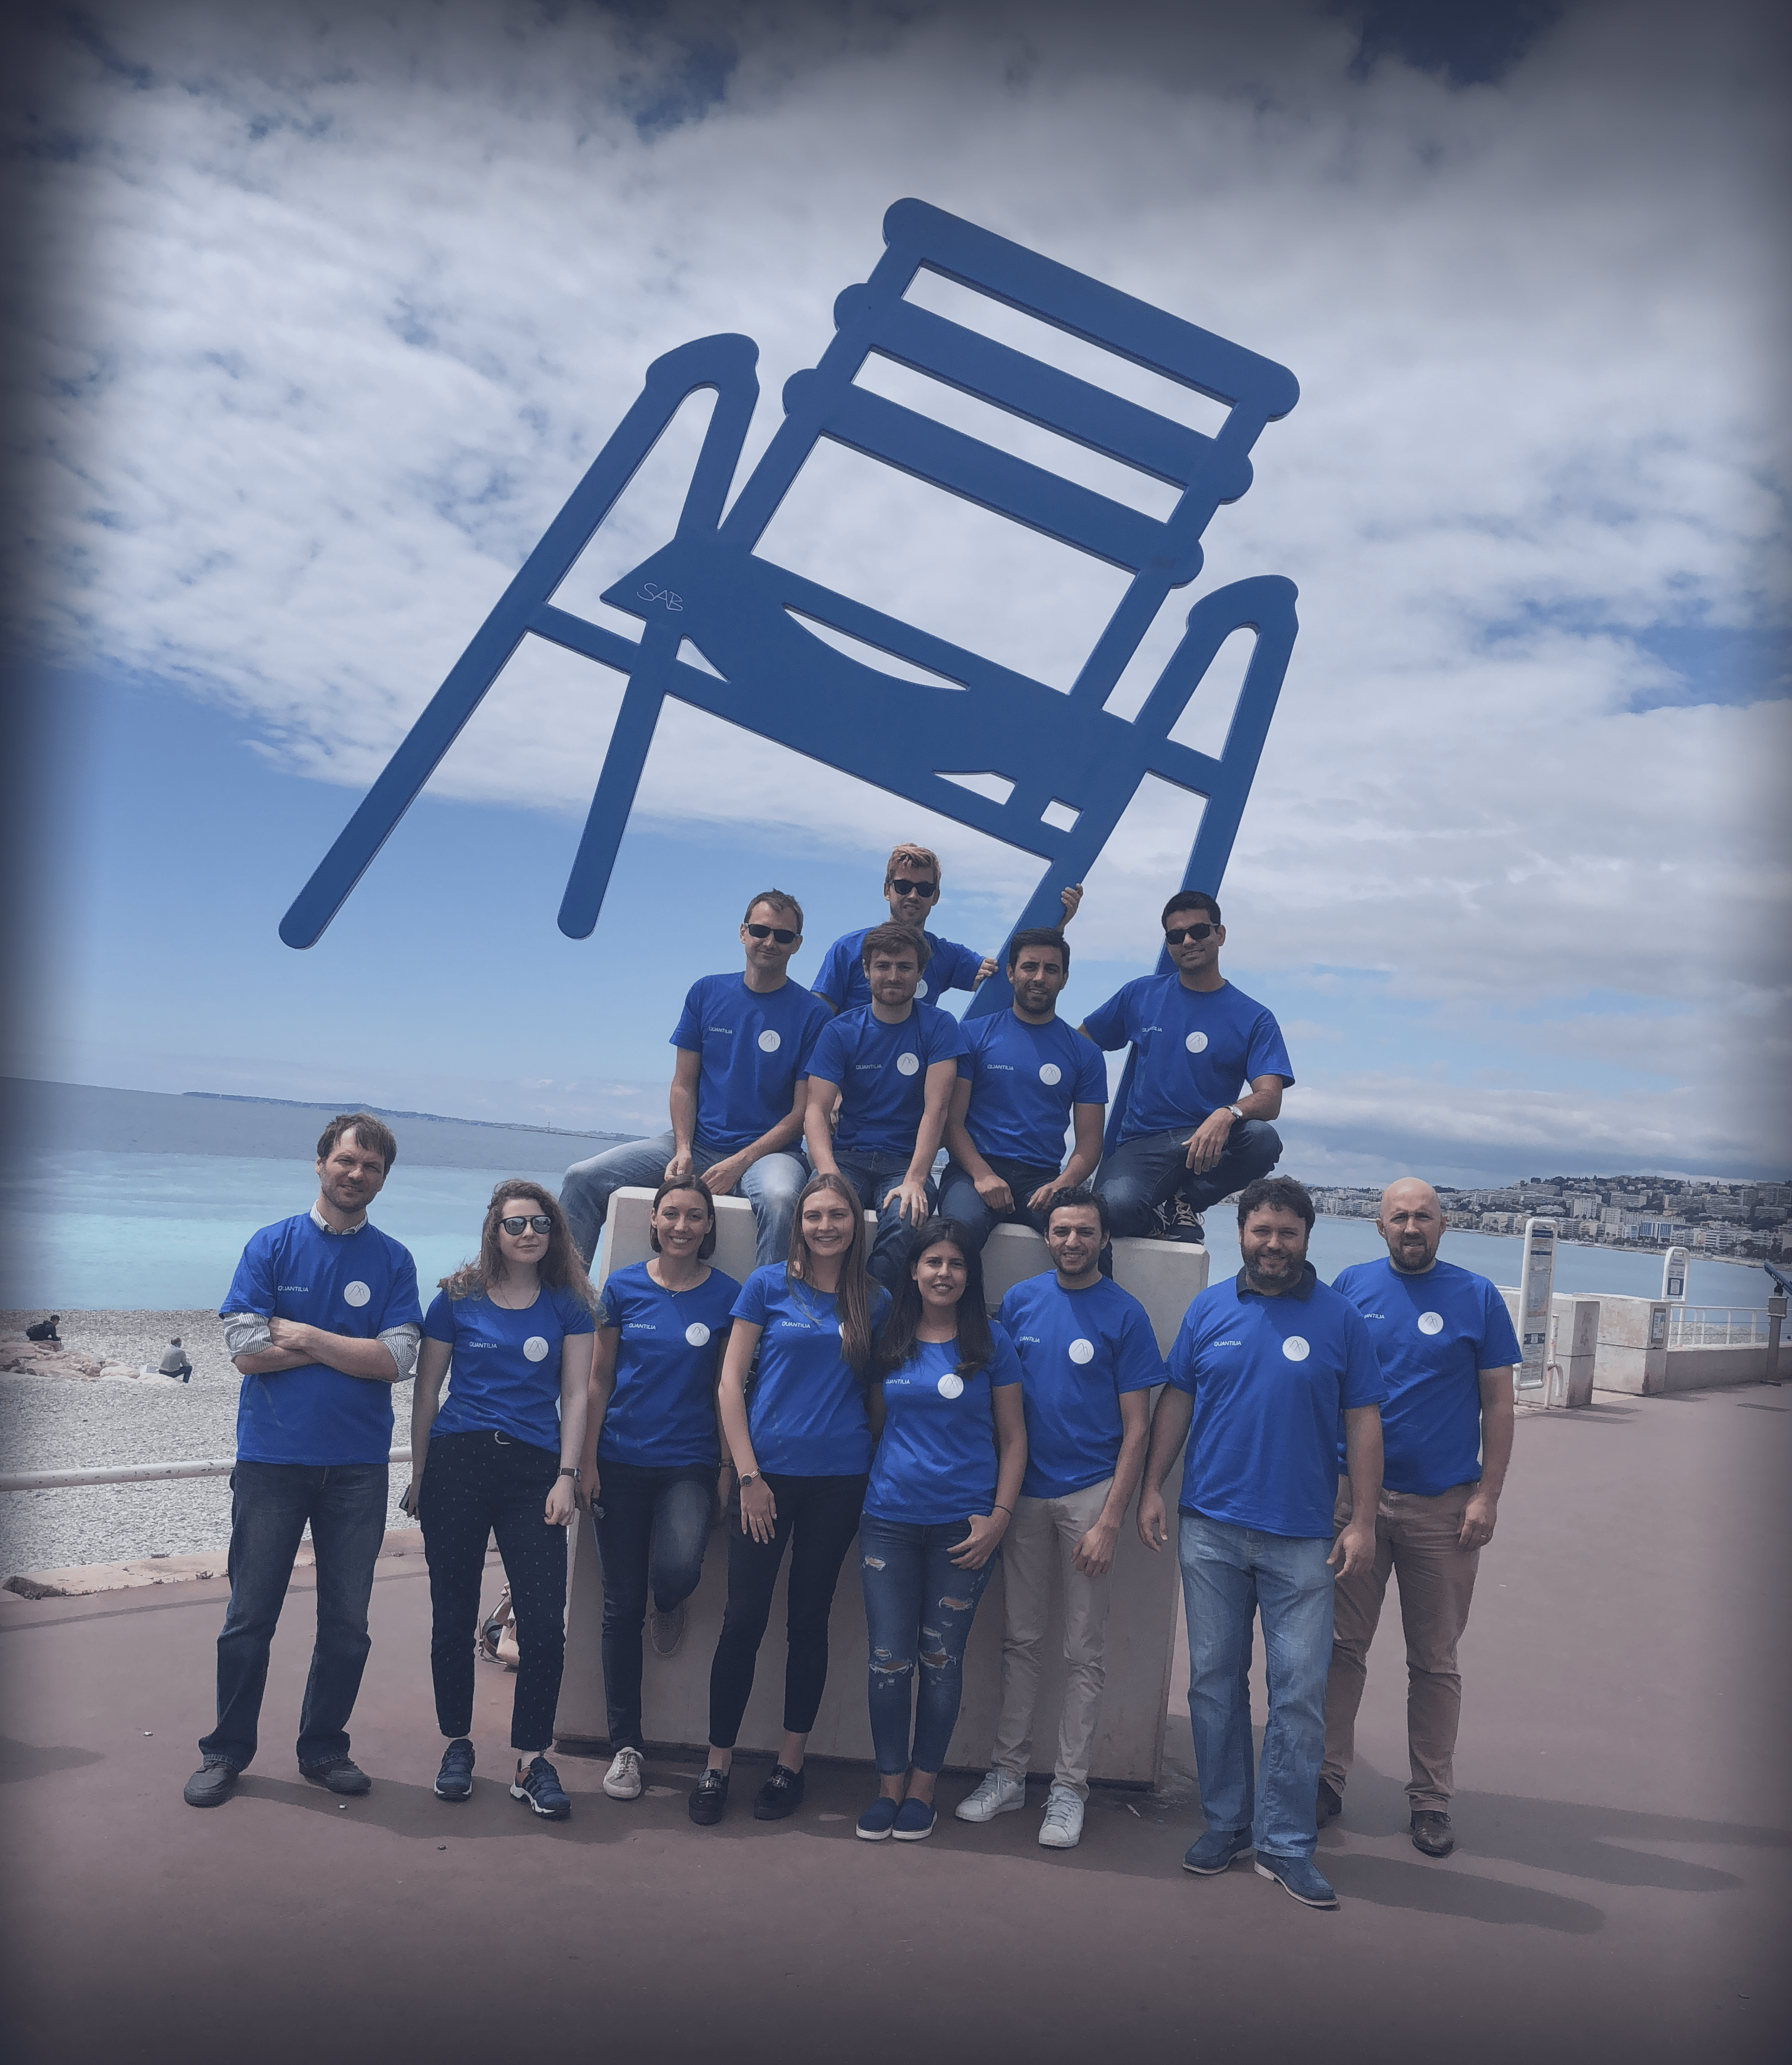 Team building afternoon in la Promenade des Anglais – Nice